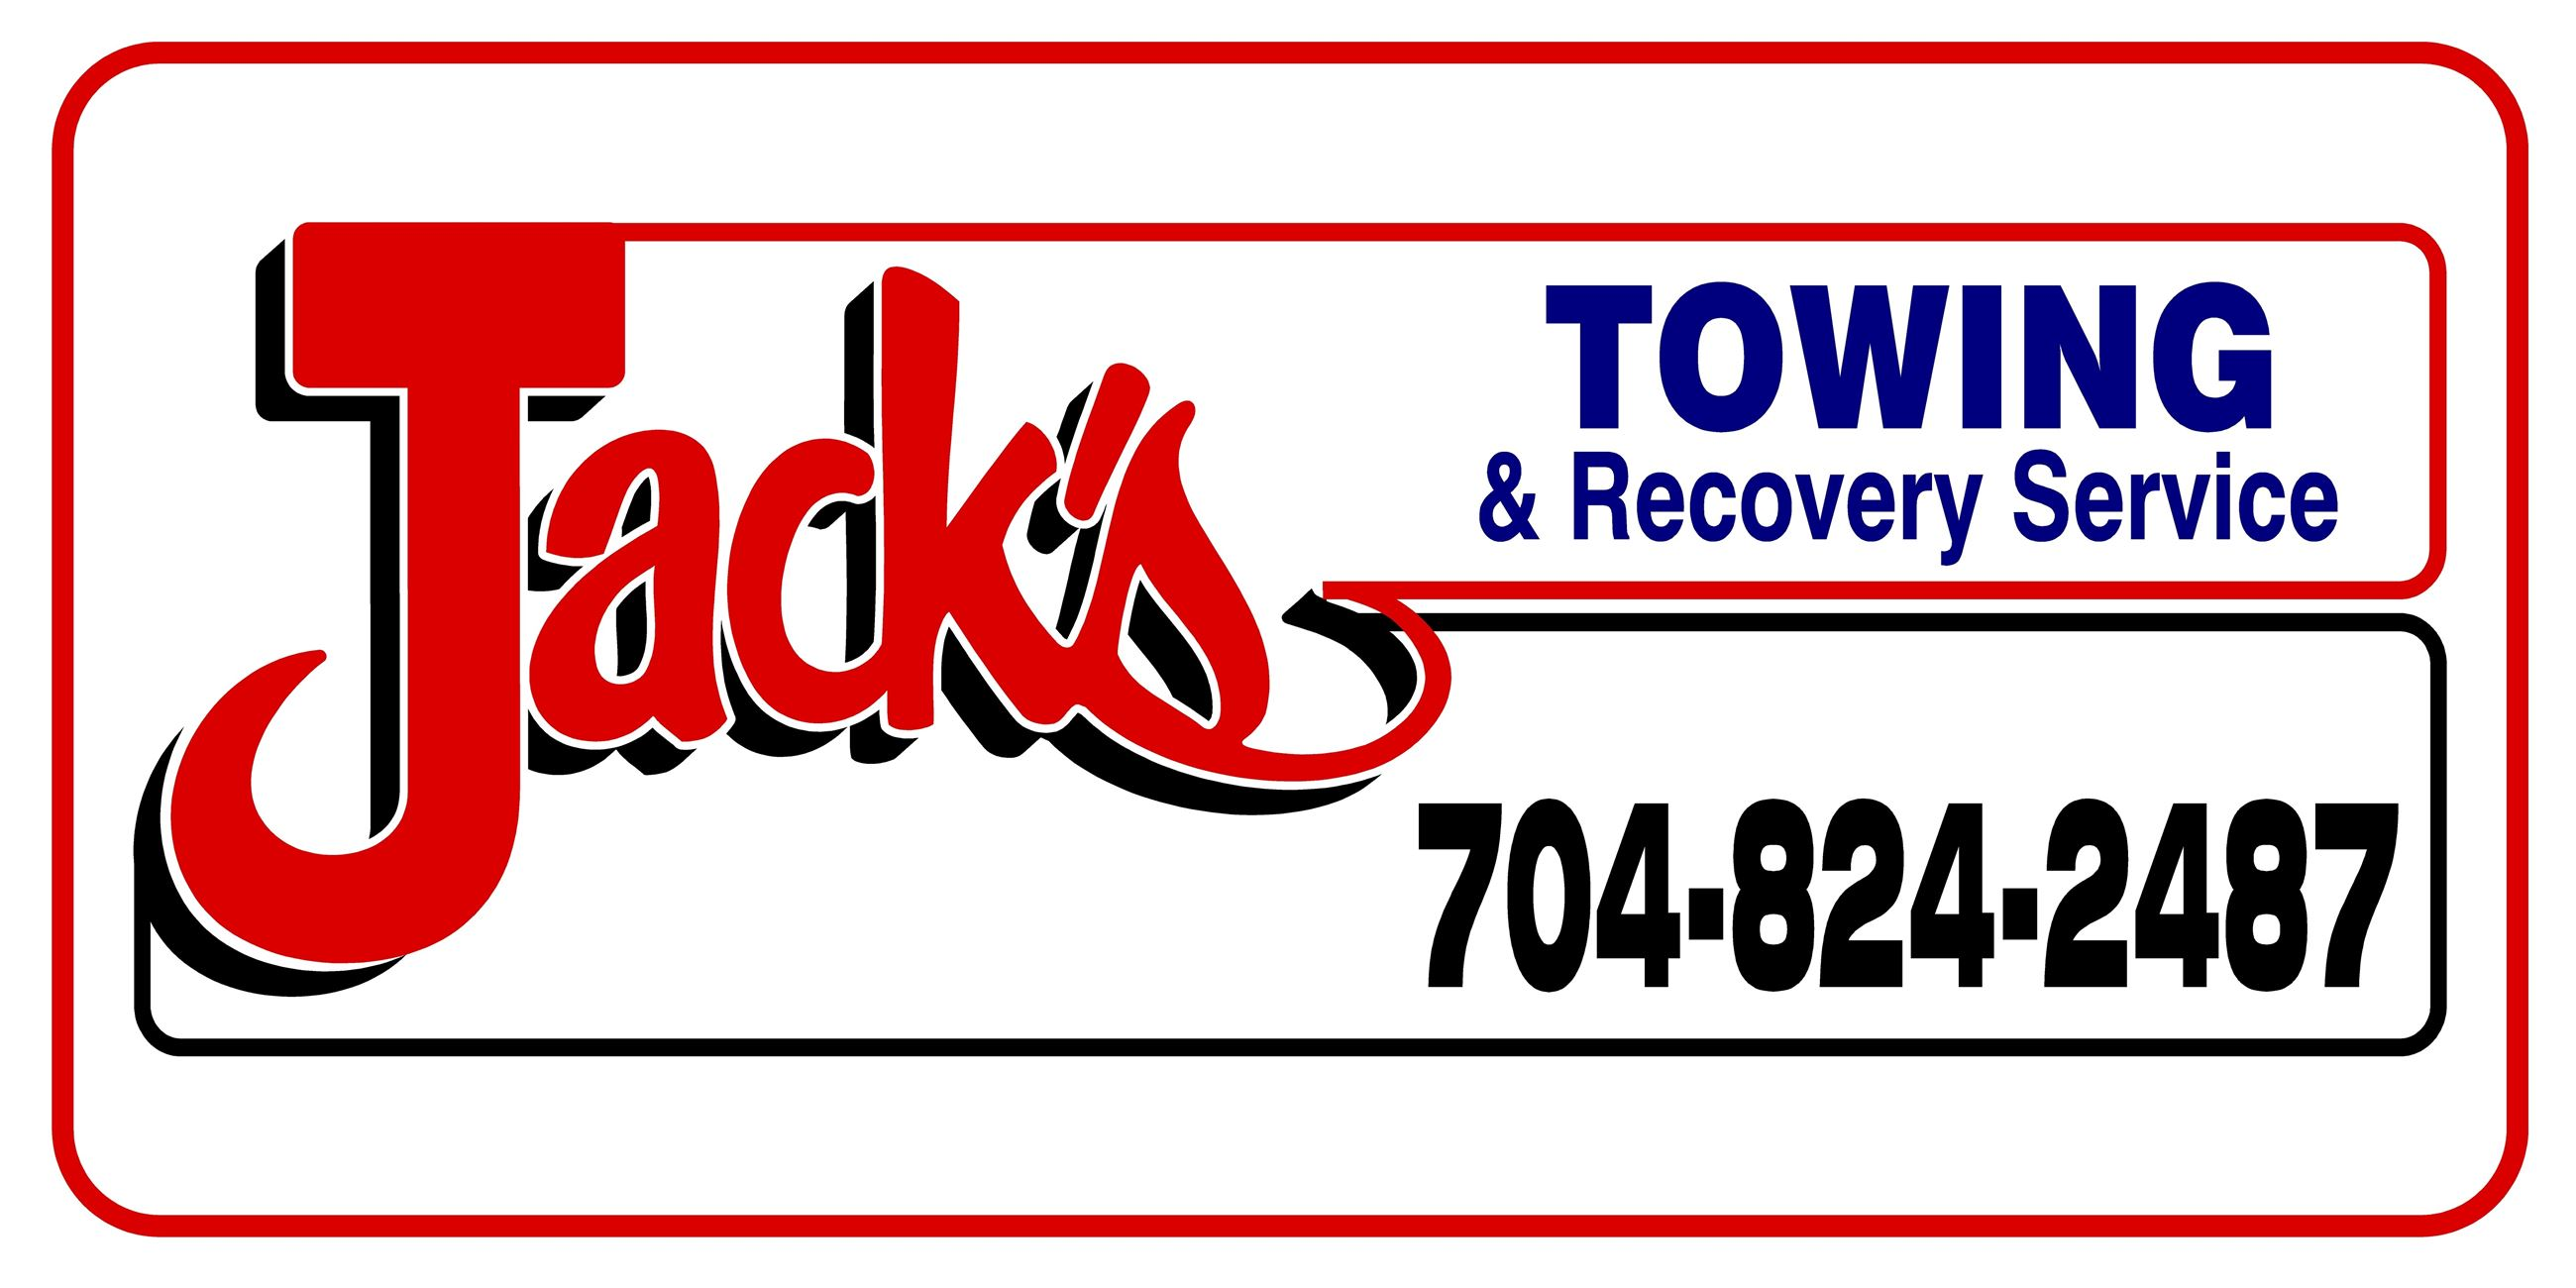 Jacks Towing